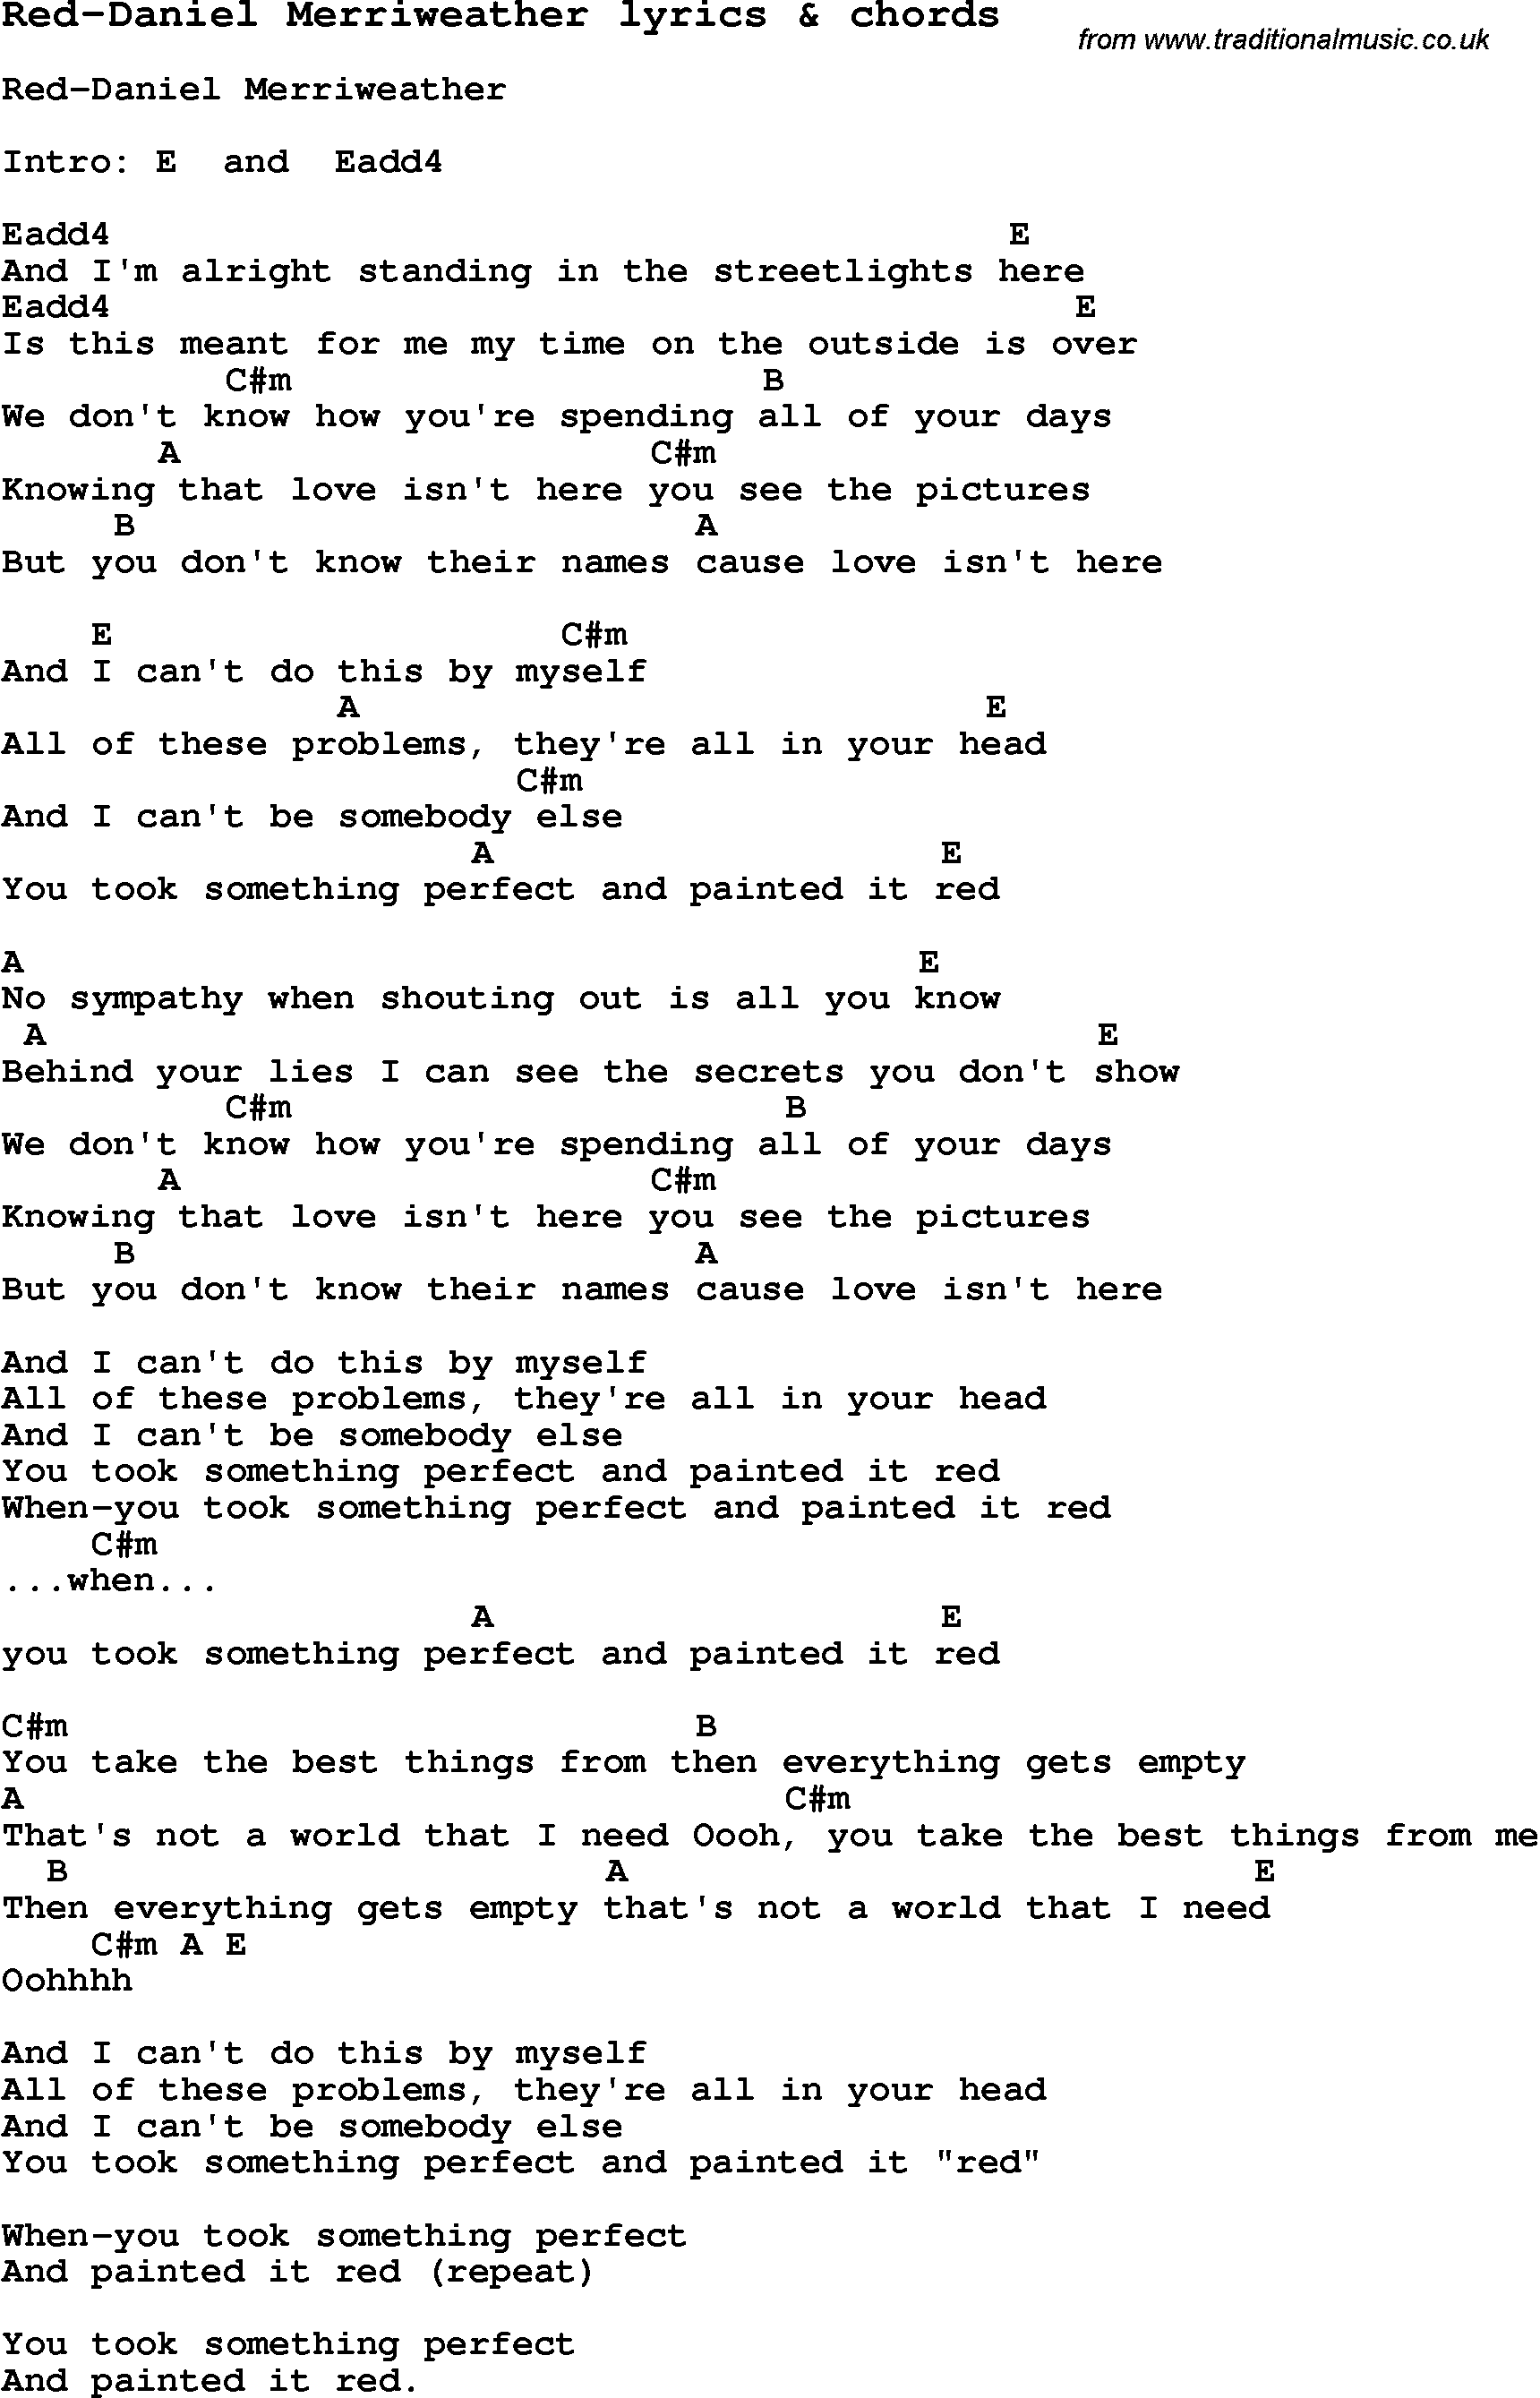 Love song lyrics forred daniel merriweather with chords love song lyrics for red daniel merriweather with chords for ukulele guitar banjo hexwebz Images